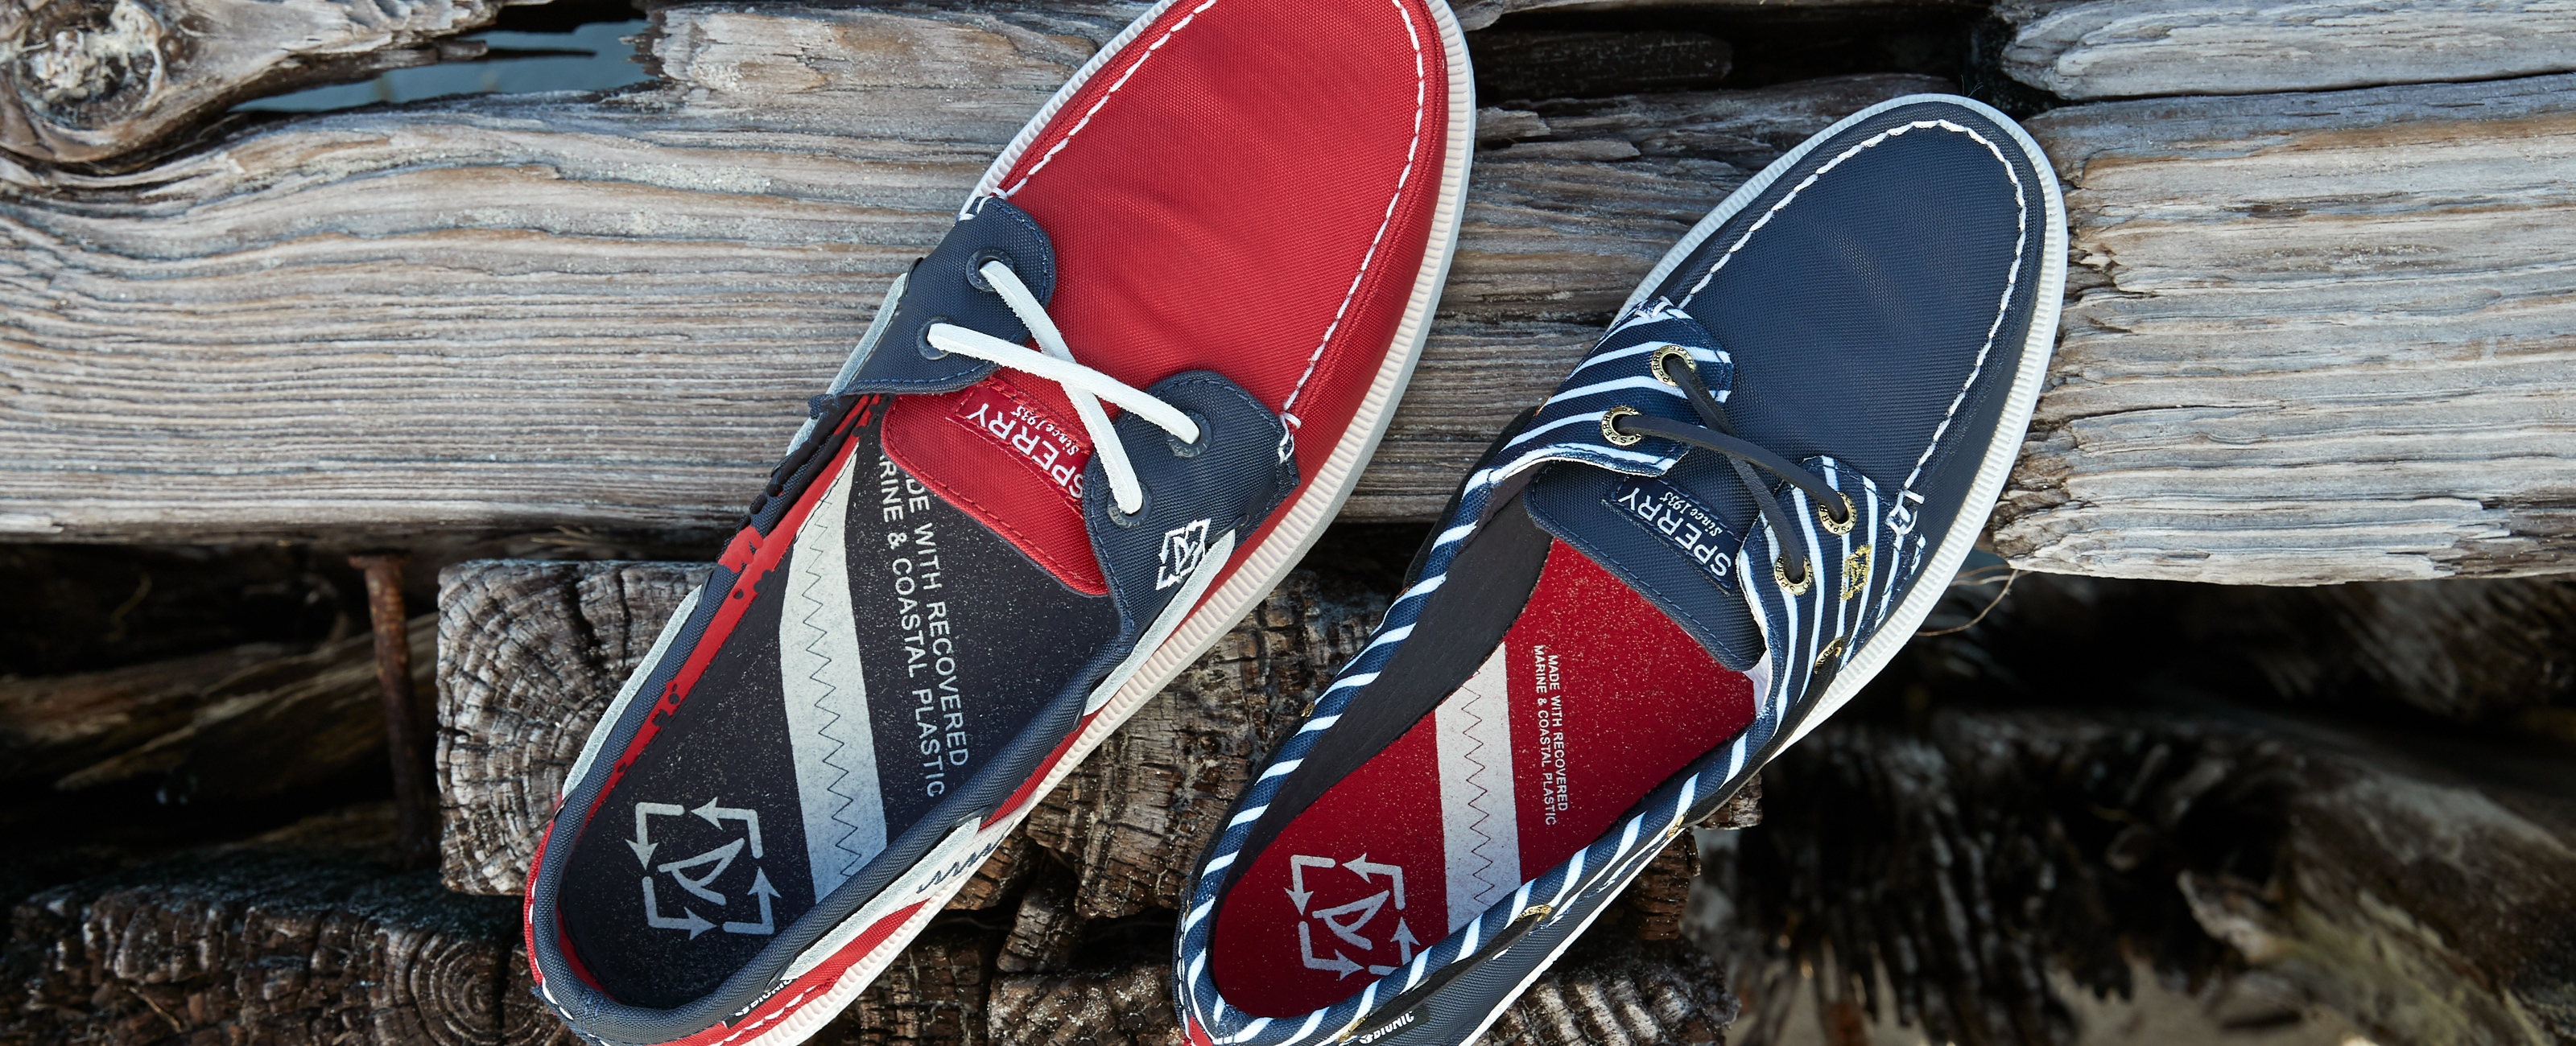 0008e6faedd90 Eco-Friendly Shoes Made from Recycled Plastic | Sperry BIONIC®